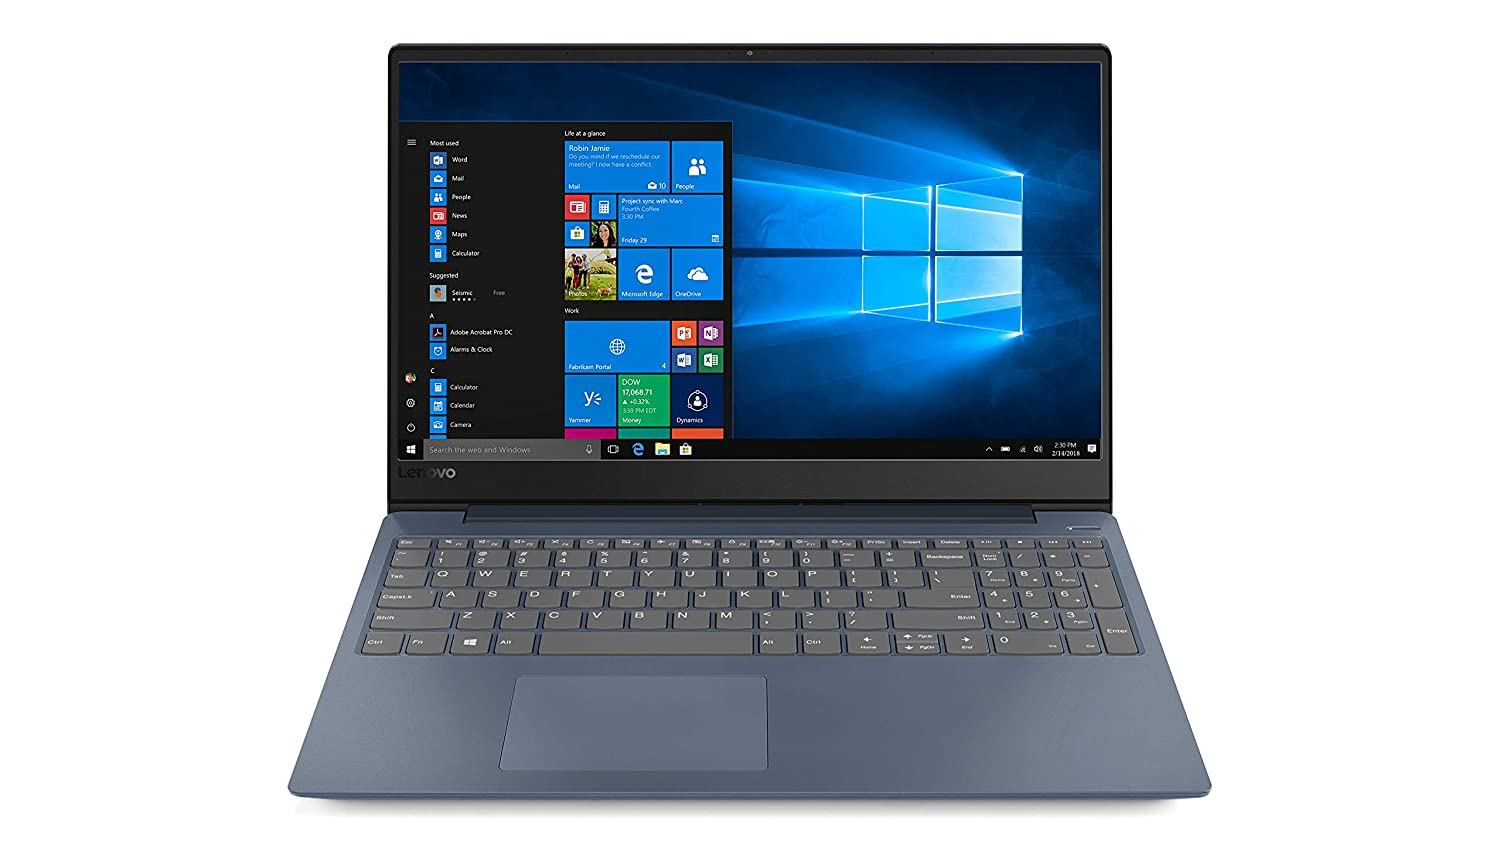 カウくる Lenovo IdeaPad Premium Home RAM, and Quad Business Laptop (Intel Gen 8th Gen i5-8250U Quad Core, 4GB RAM, 1TB Sata SSD, 15.6